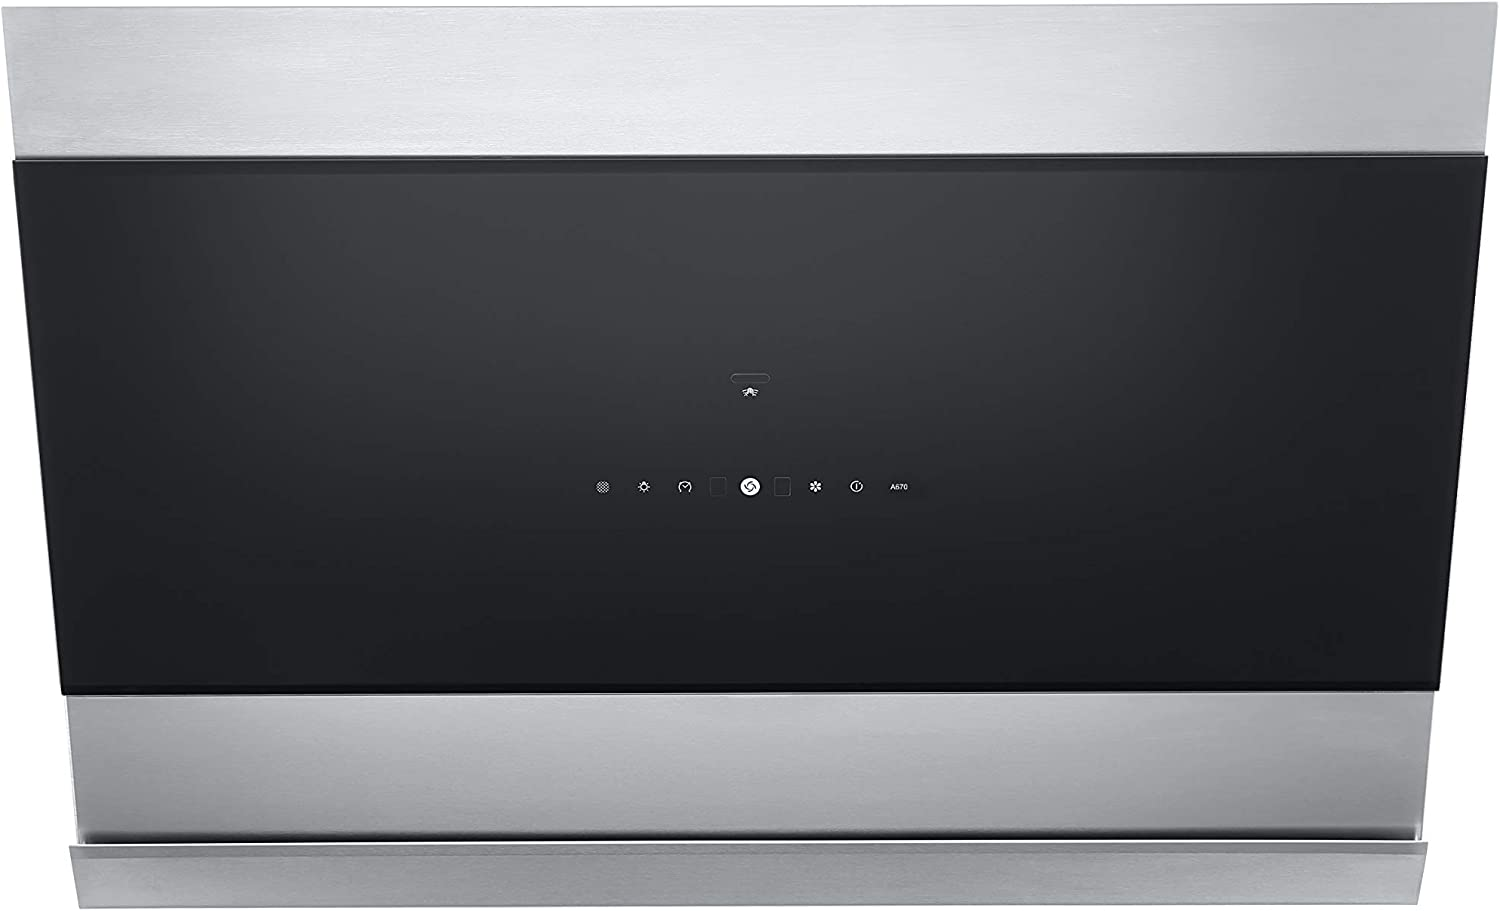 """ROBAM A670 36"""" Range Hood   Contemporary Slanted Wall Mount Kitchen Vent Hood   Powerful Motor Rated at 430PA with 57dB Noise Level   Convenient Hands-Off Operation   Dishwasher-safe baffle, LED Lamps"""